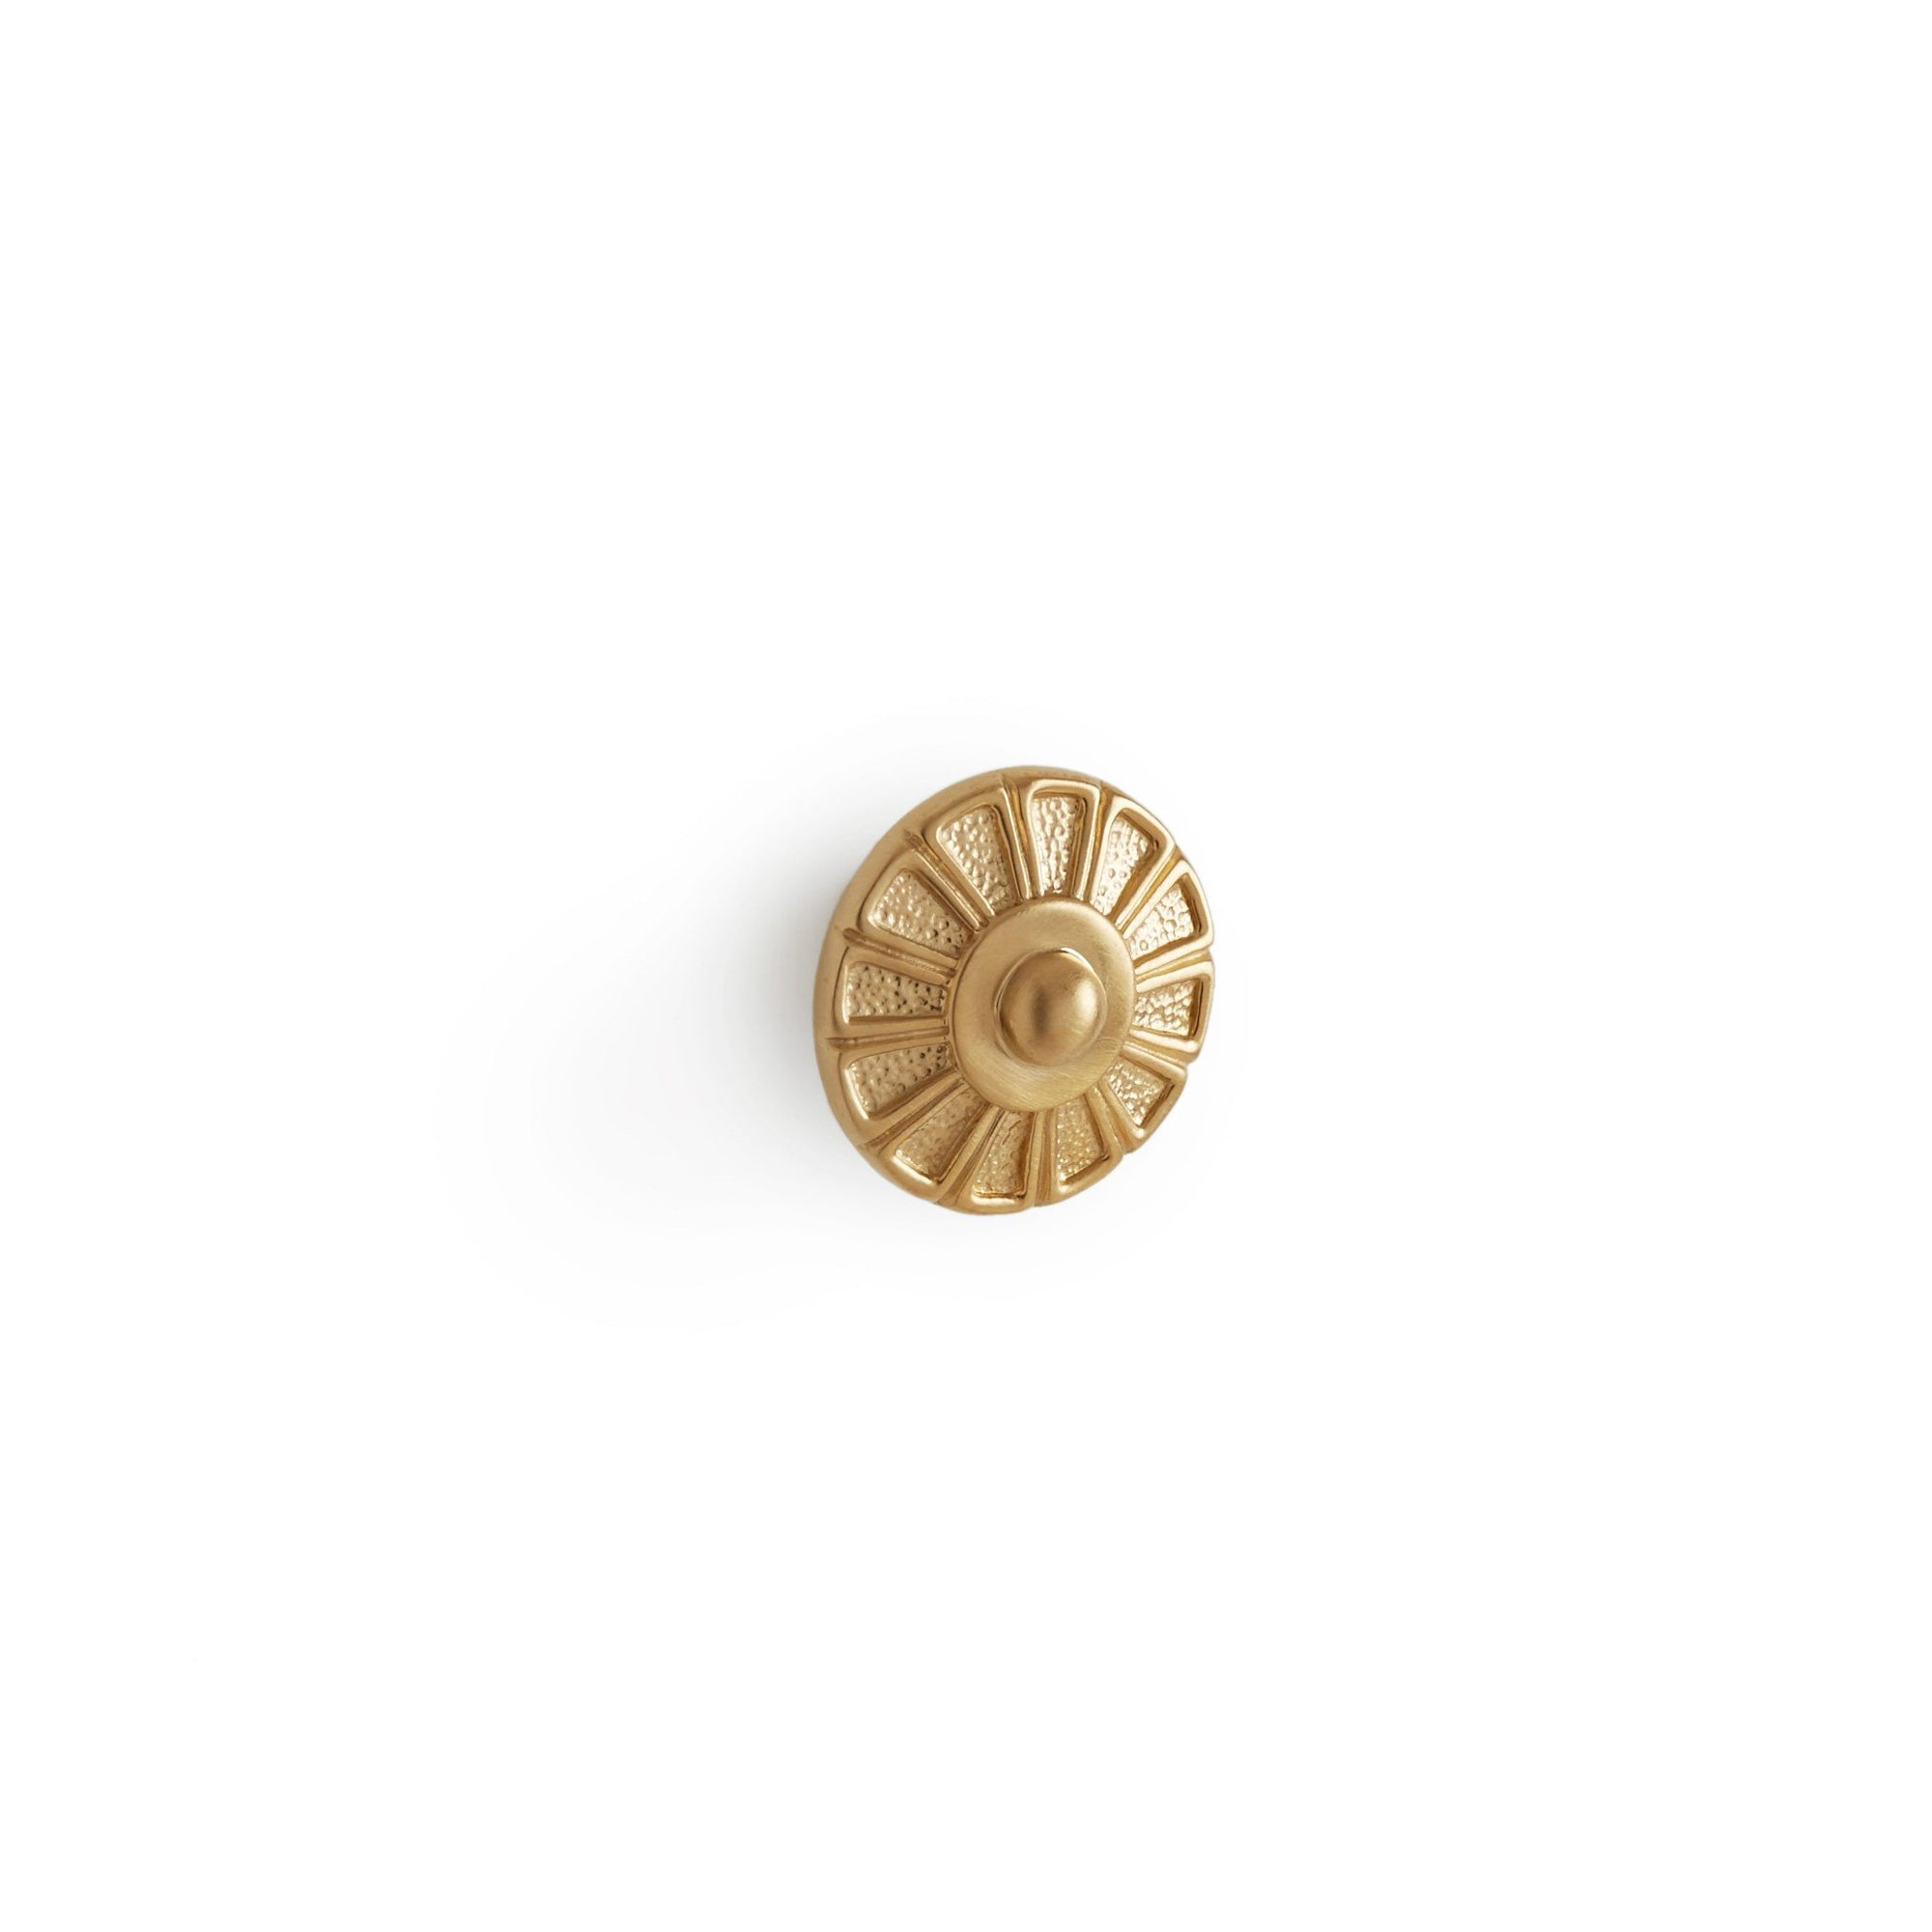 1048-GP Sherle Wagner International Riviera Cabinet & Drawer Knob in Gold Plate metal finish